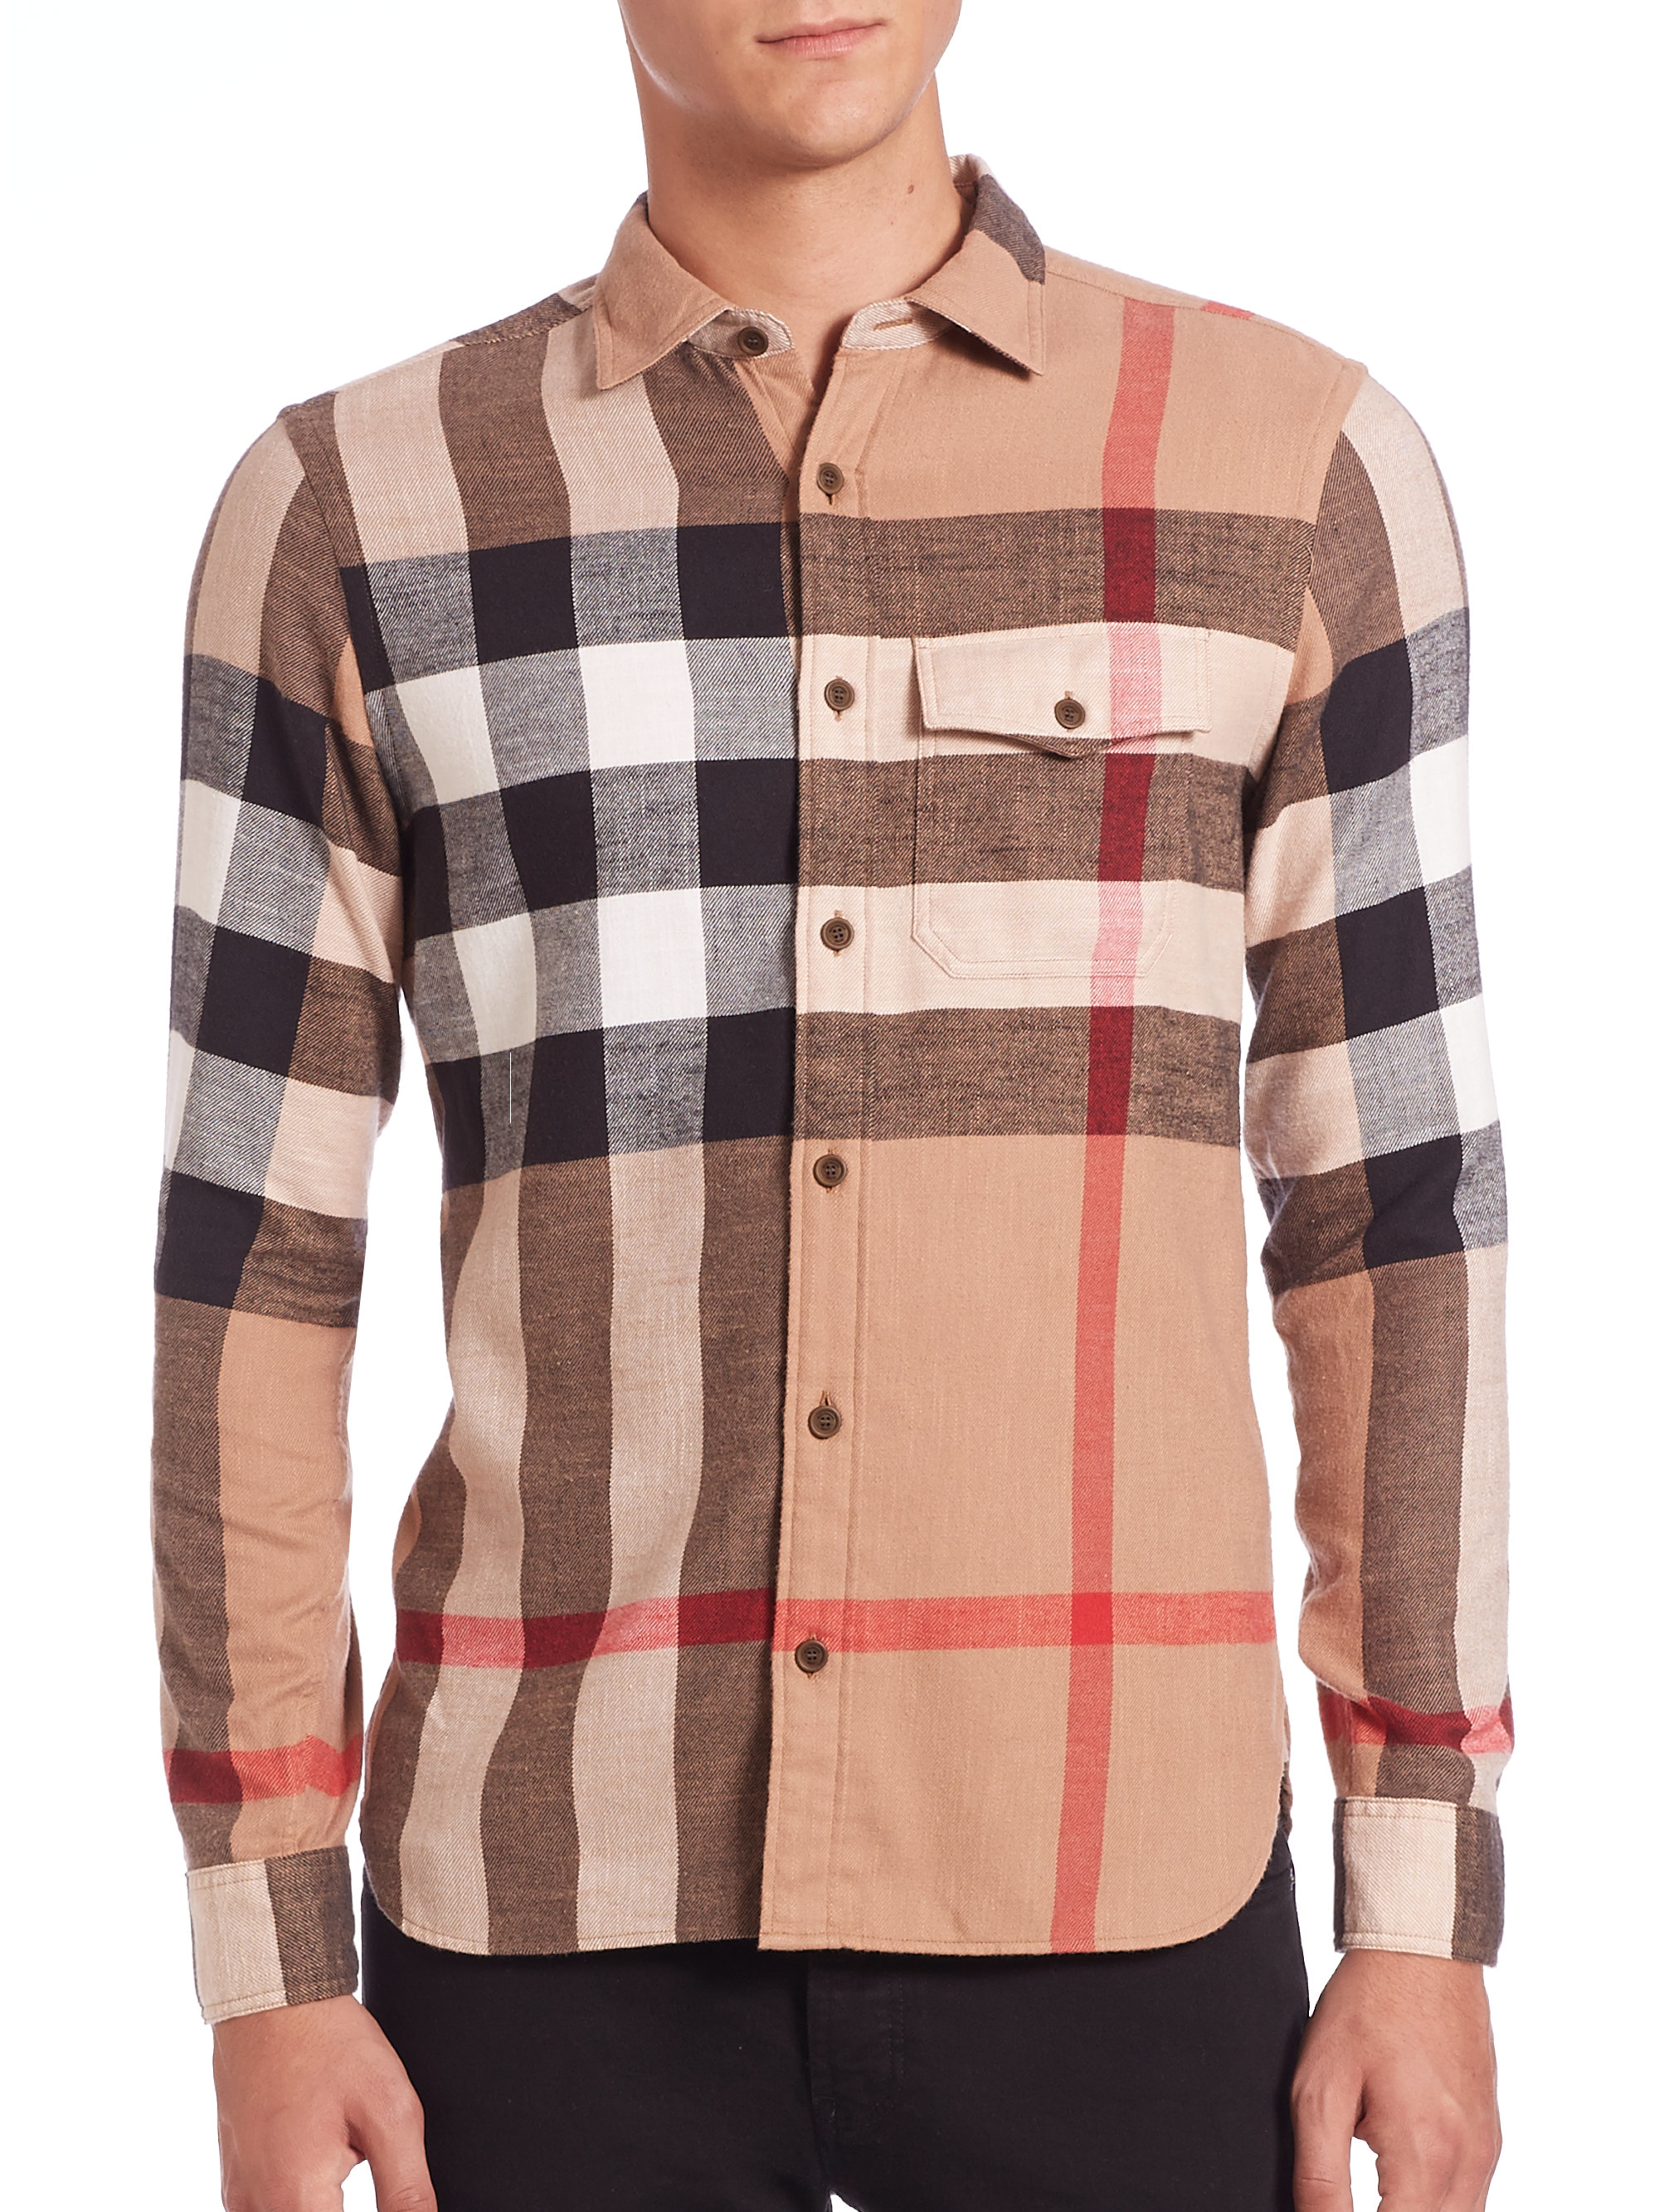 Burberry brit check shirt in natural for men lyst for Burberry brit checked shirt